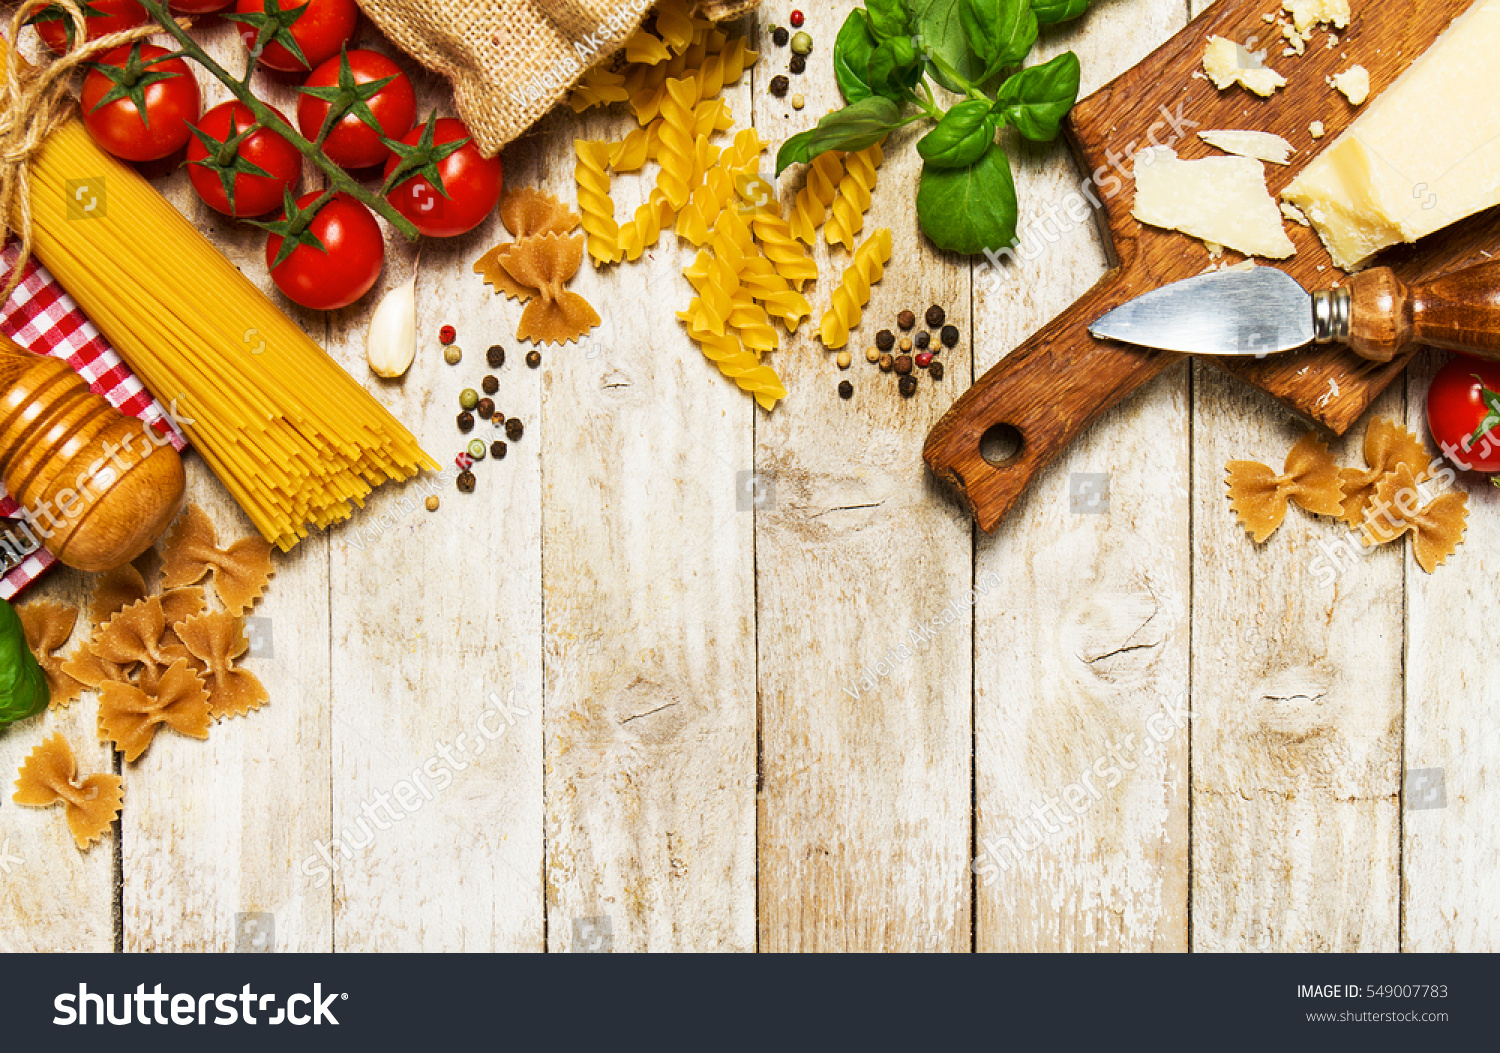 Italian Food Ingredients Background Fresh Vegetables Stock Photo ...